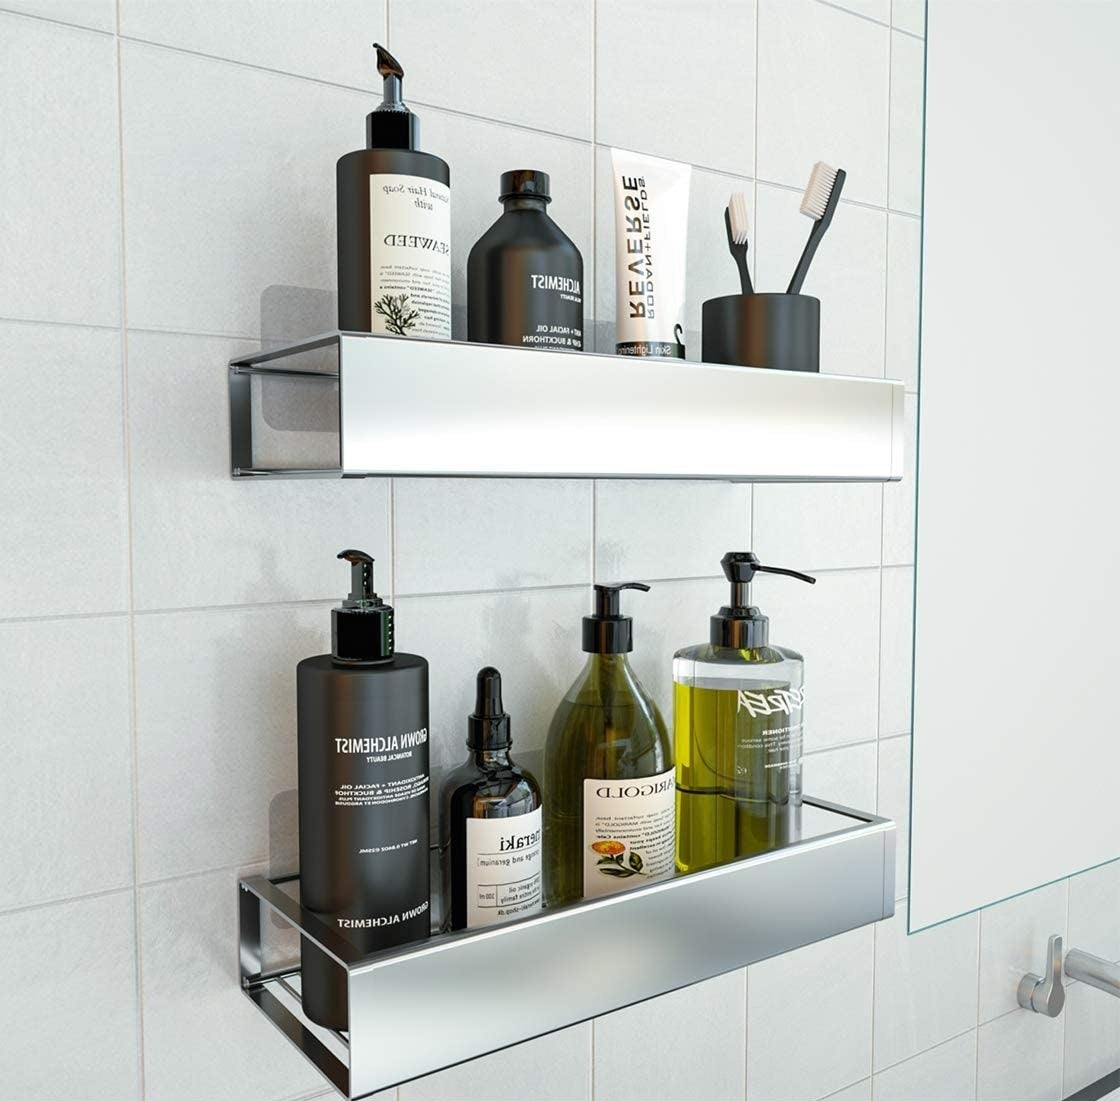 A pair of wall-mounted stainless steel shelves containing personal care products